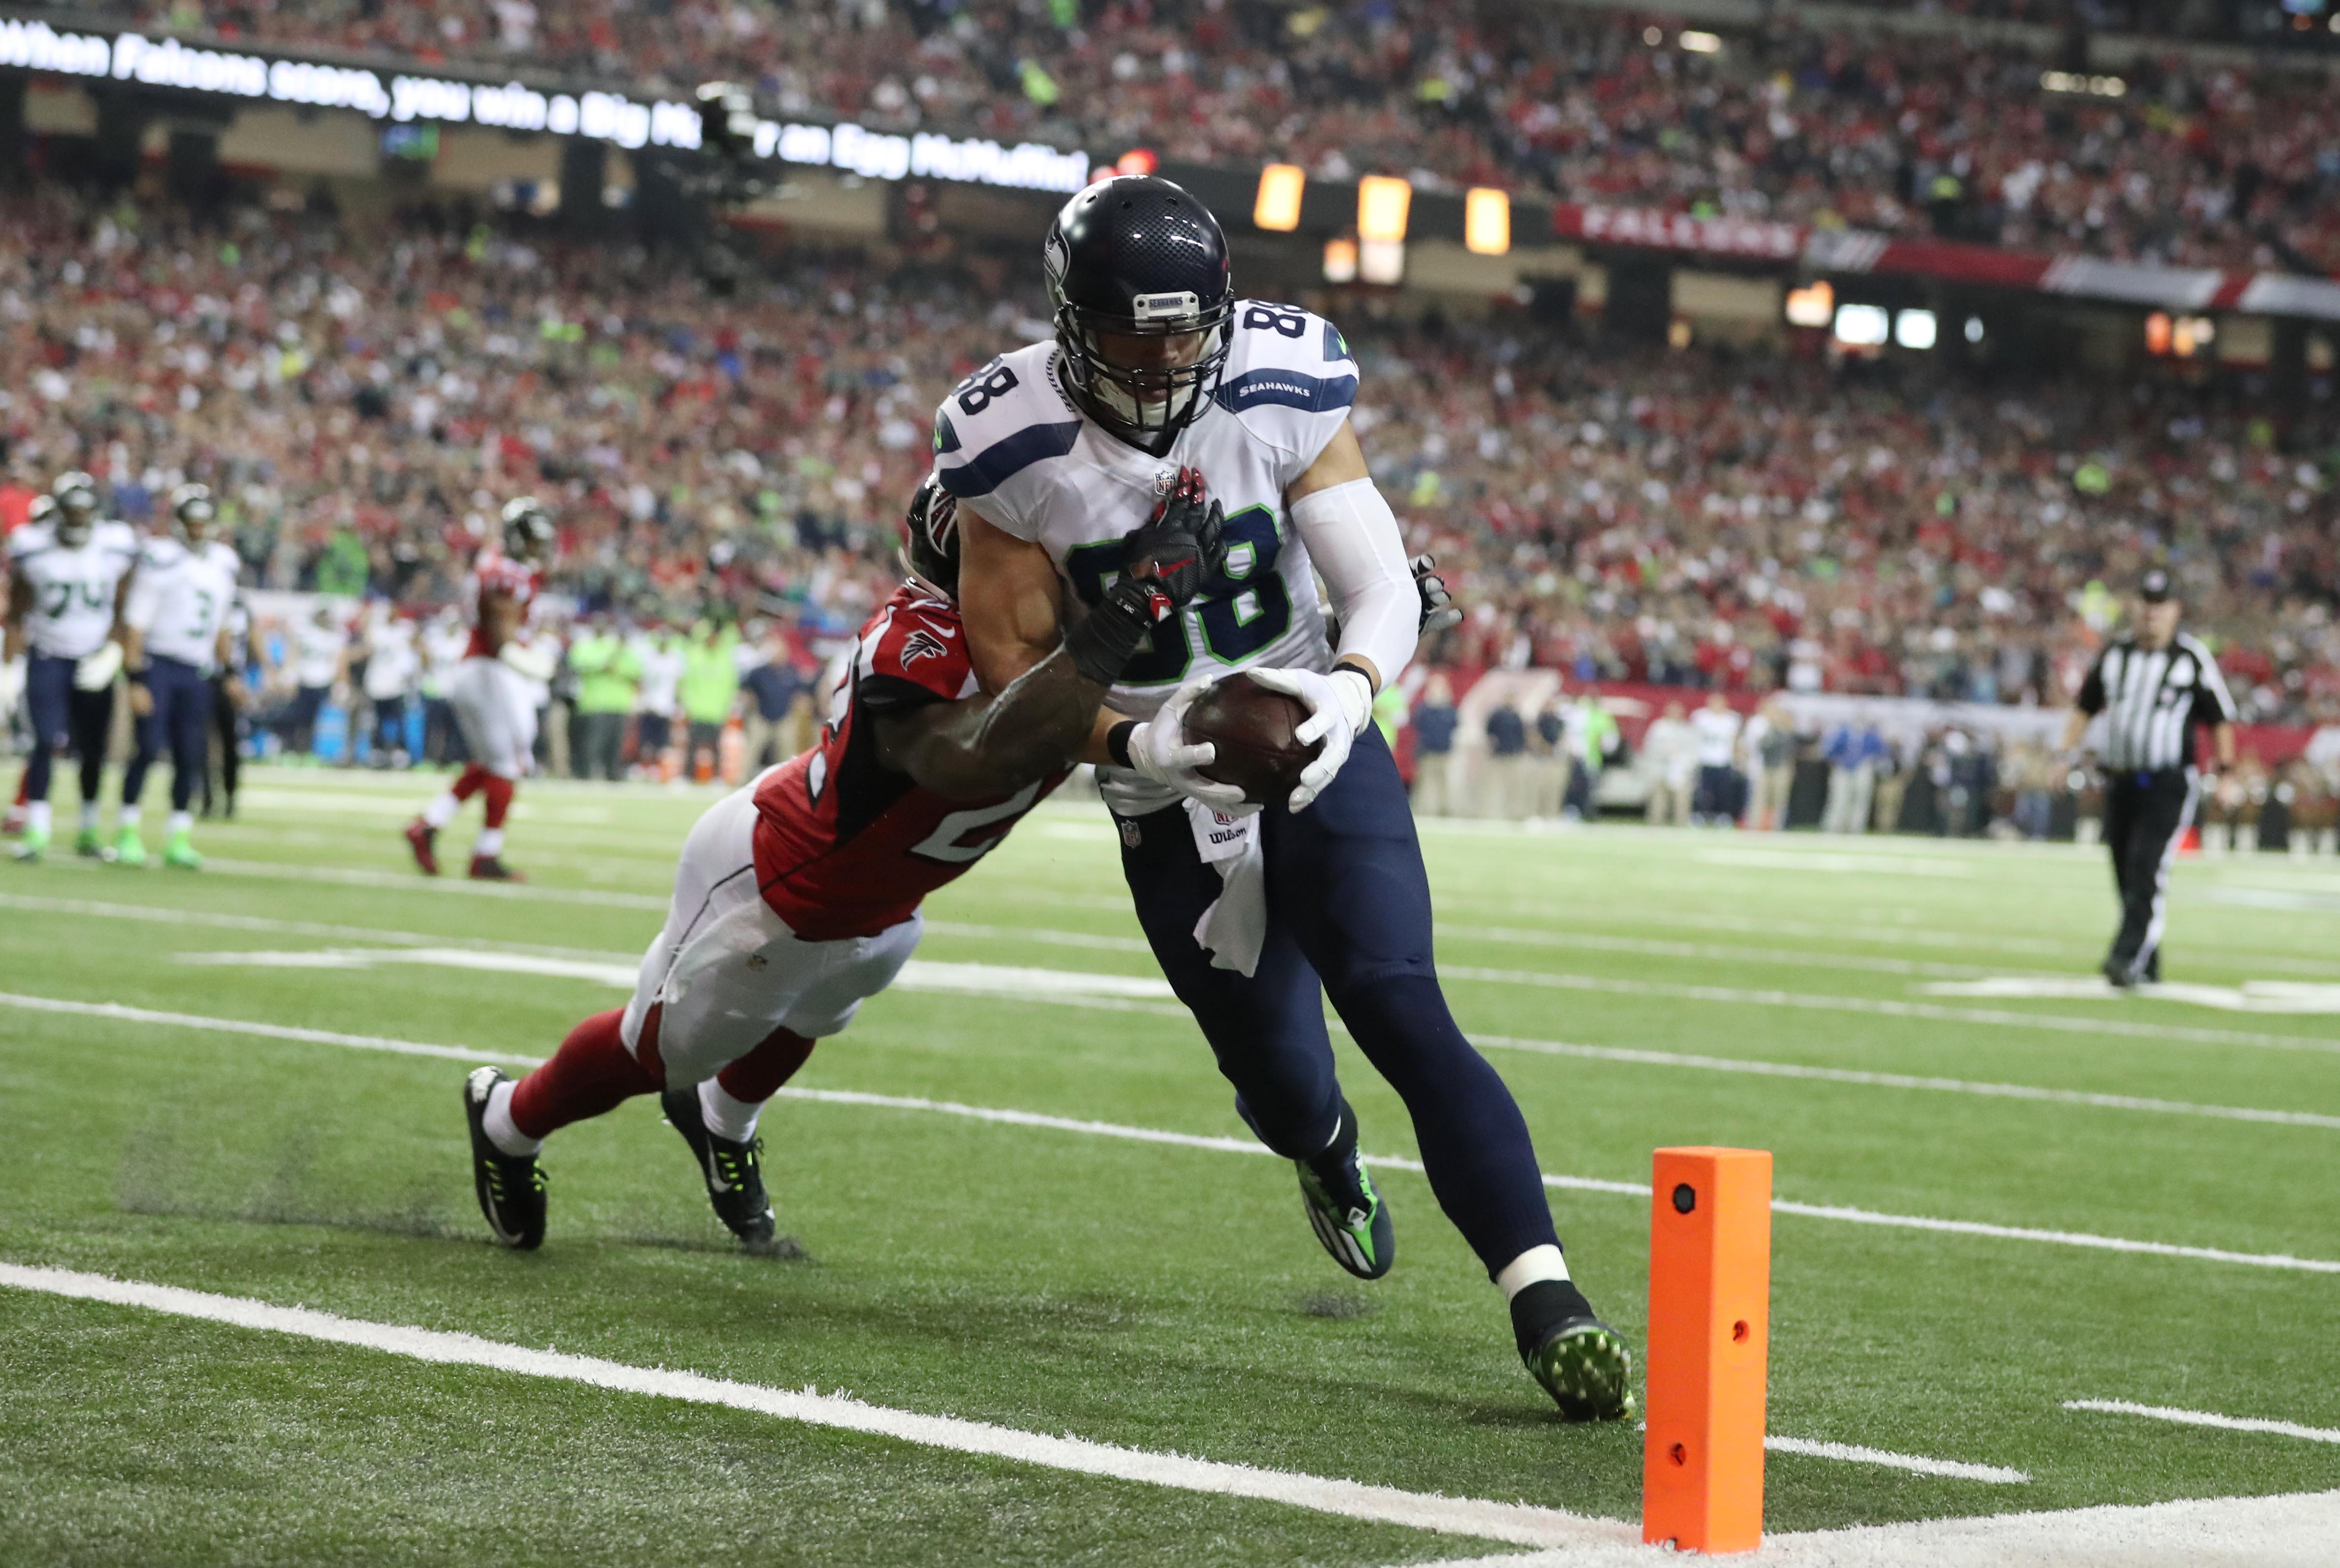 9809708-nfl-nfc-divisional-seattle-seahawks-at-atlanta-falcons